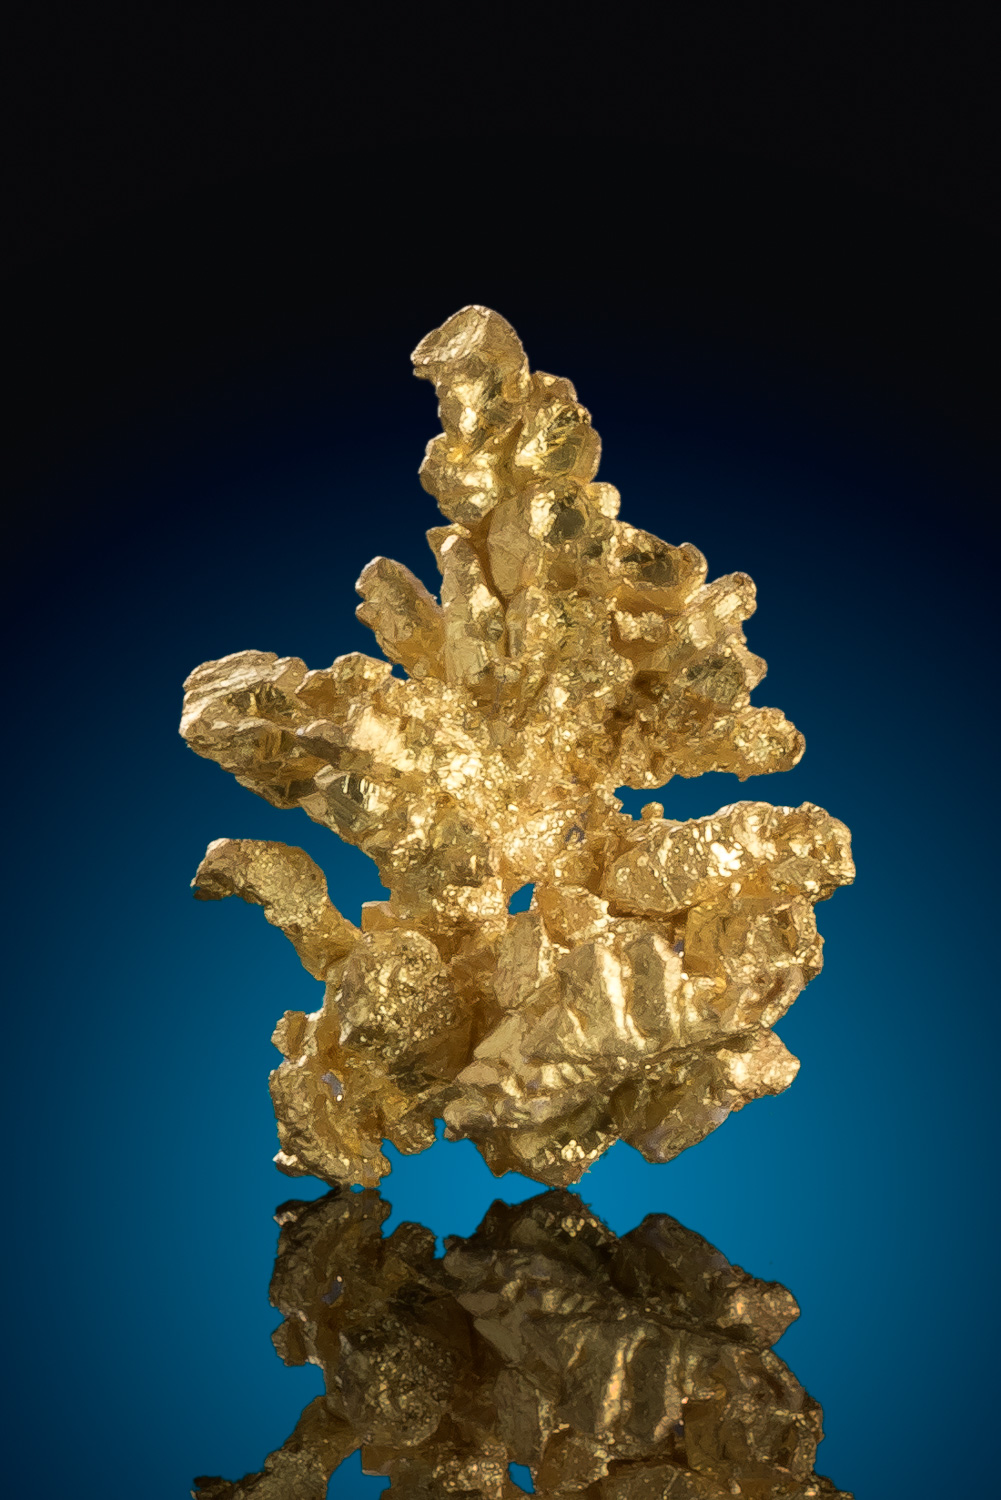 Dendritic Chunky Gold Crystal - Mariposa County, California